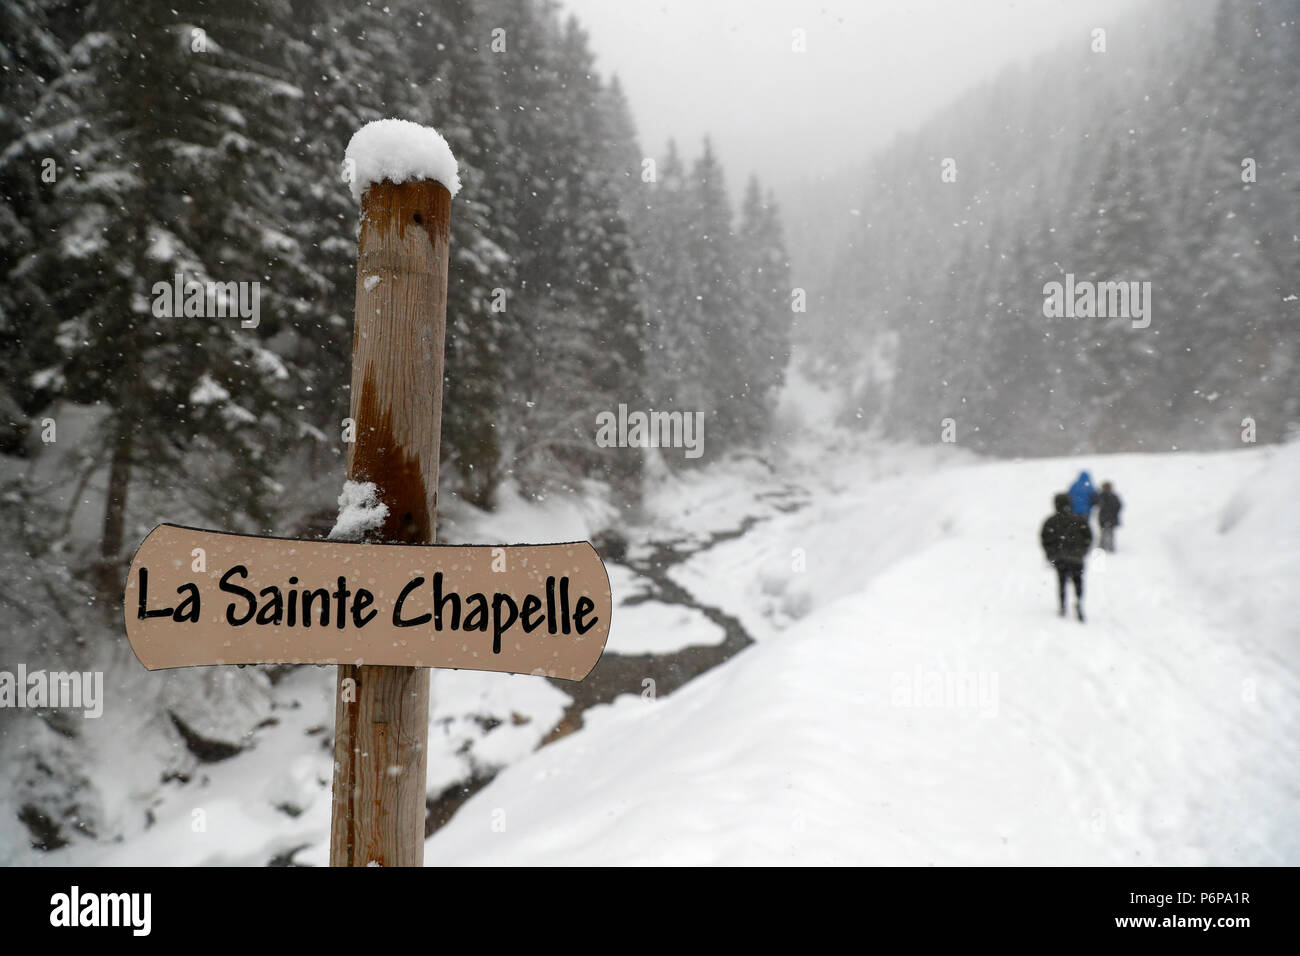 Path in winter. La Sainte Chapelle.  Les Contamines. France. - Stock Image